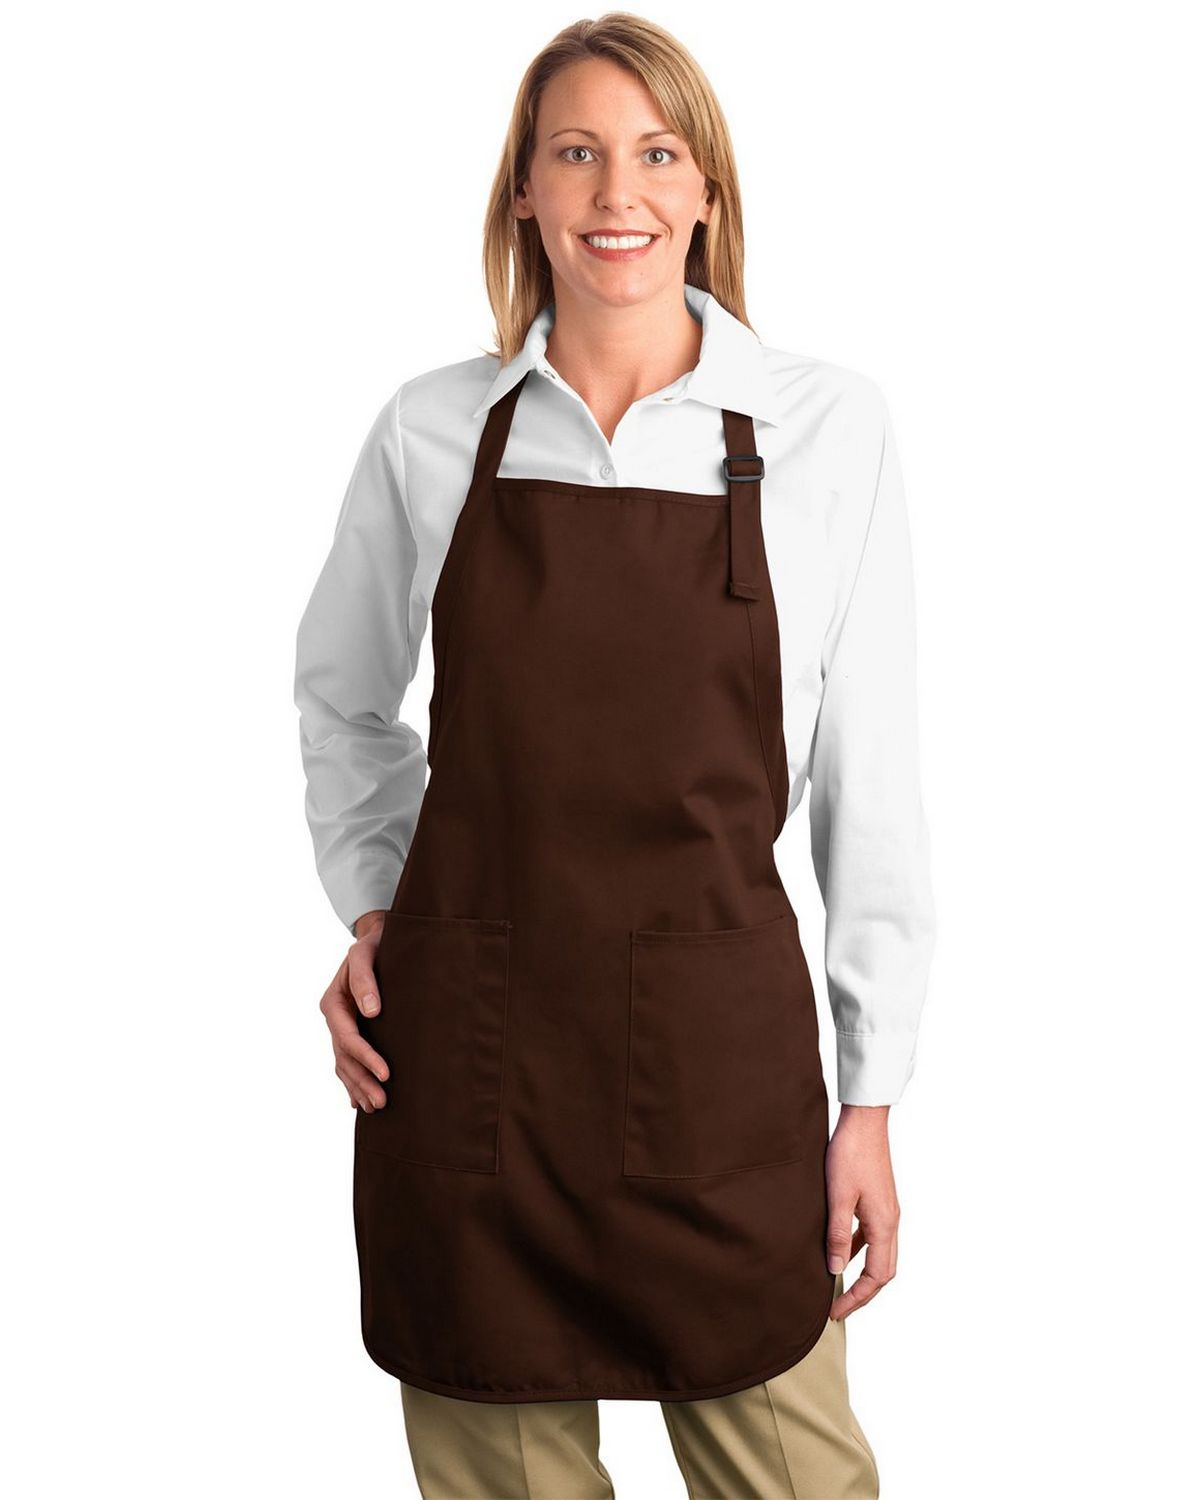 Port Authority A500 Full Length Apron with Pockets